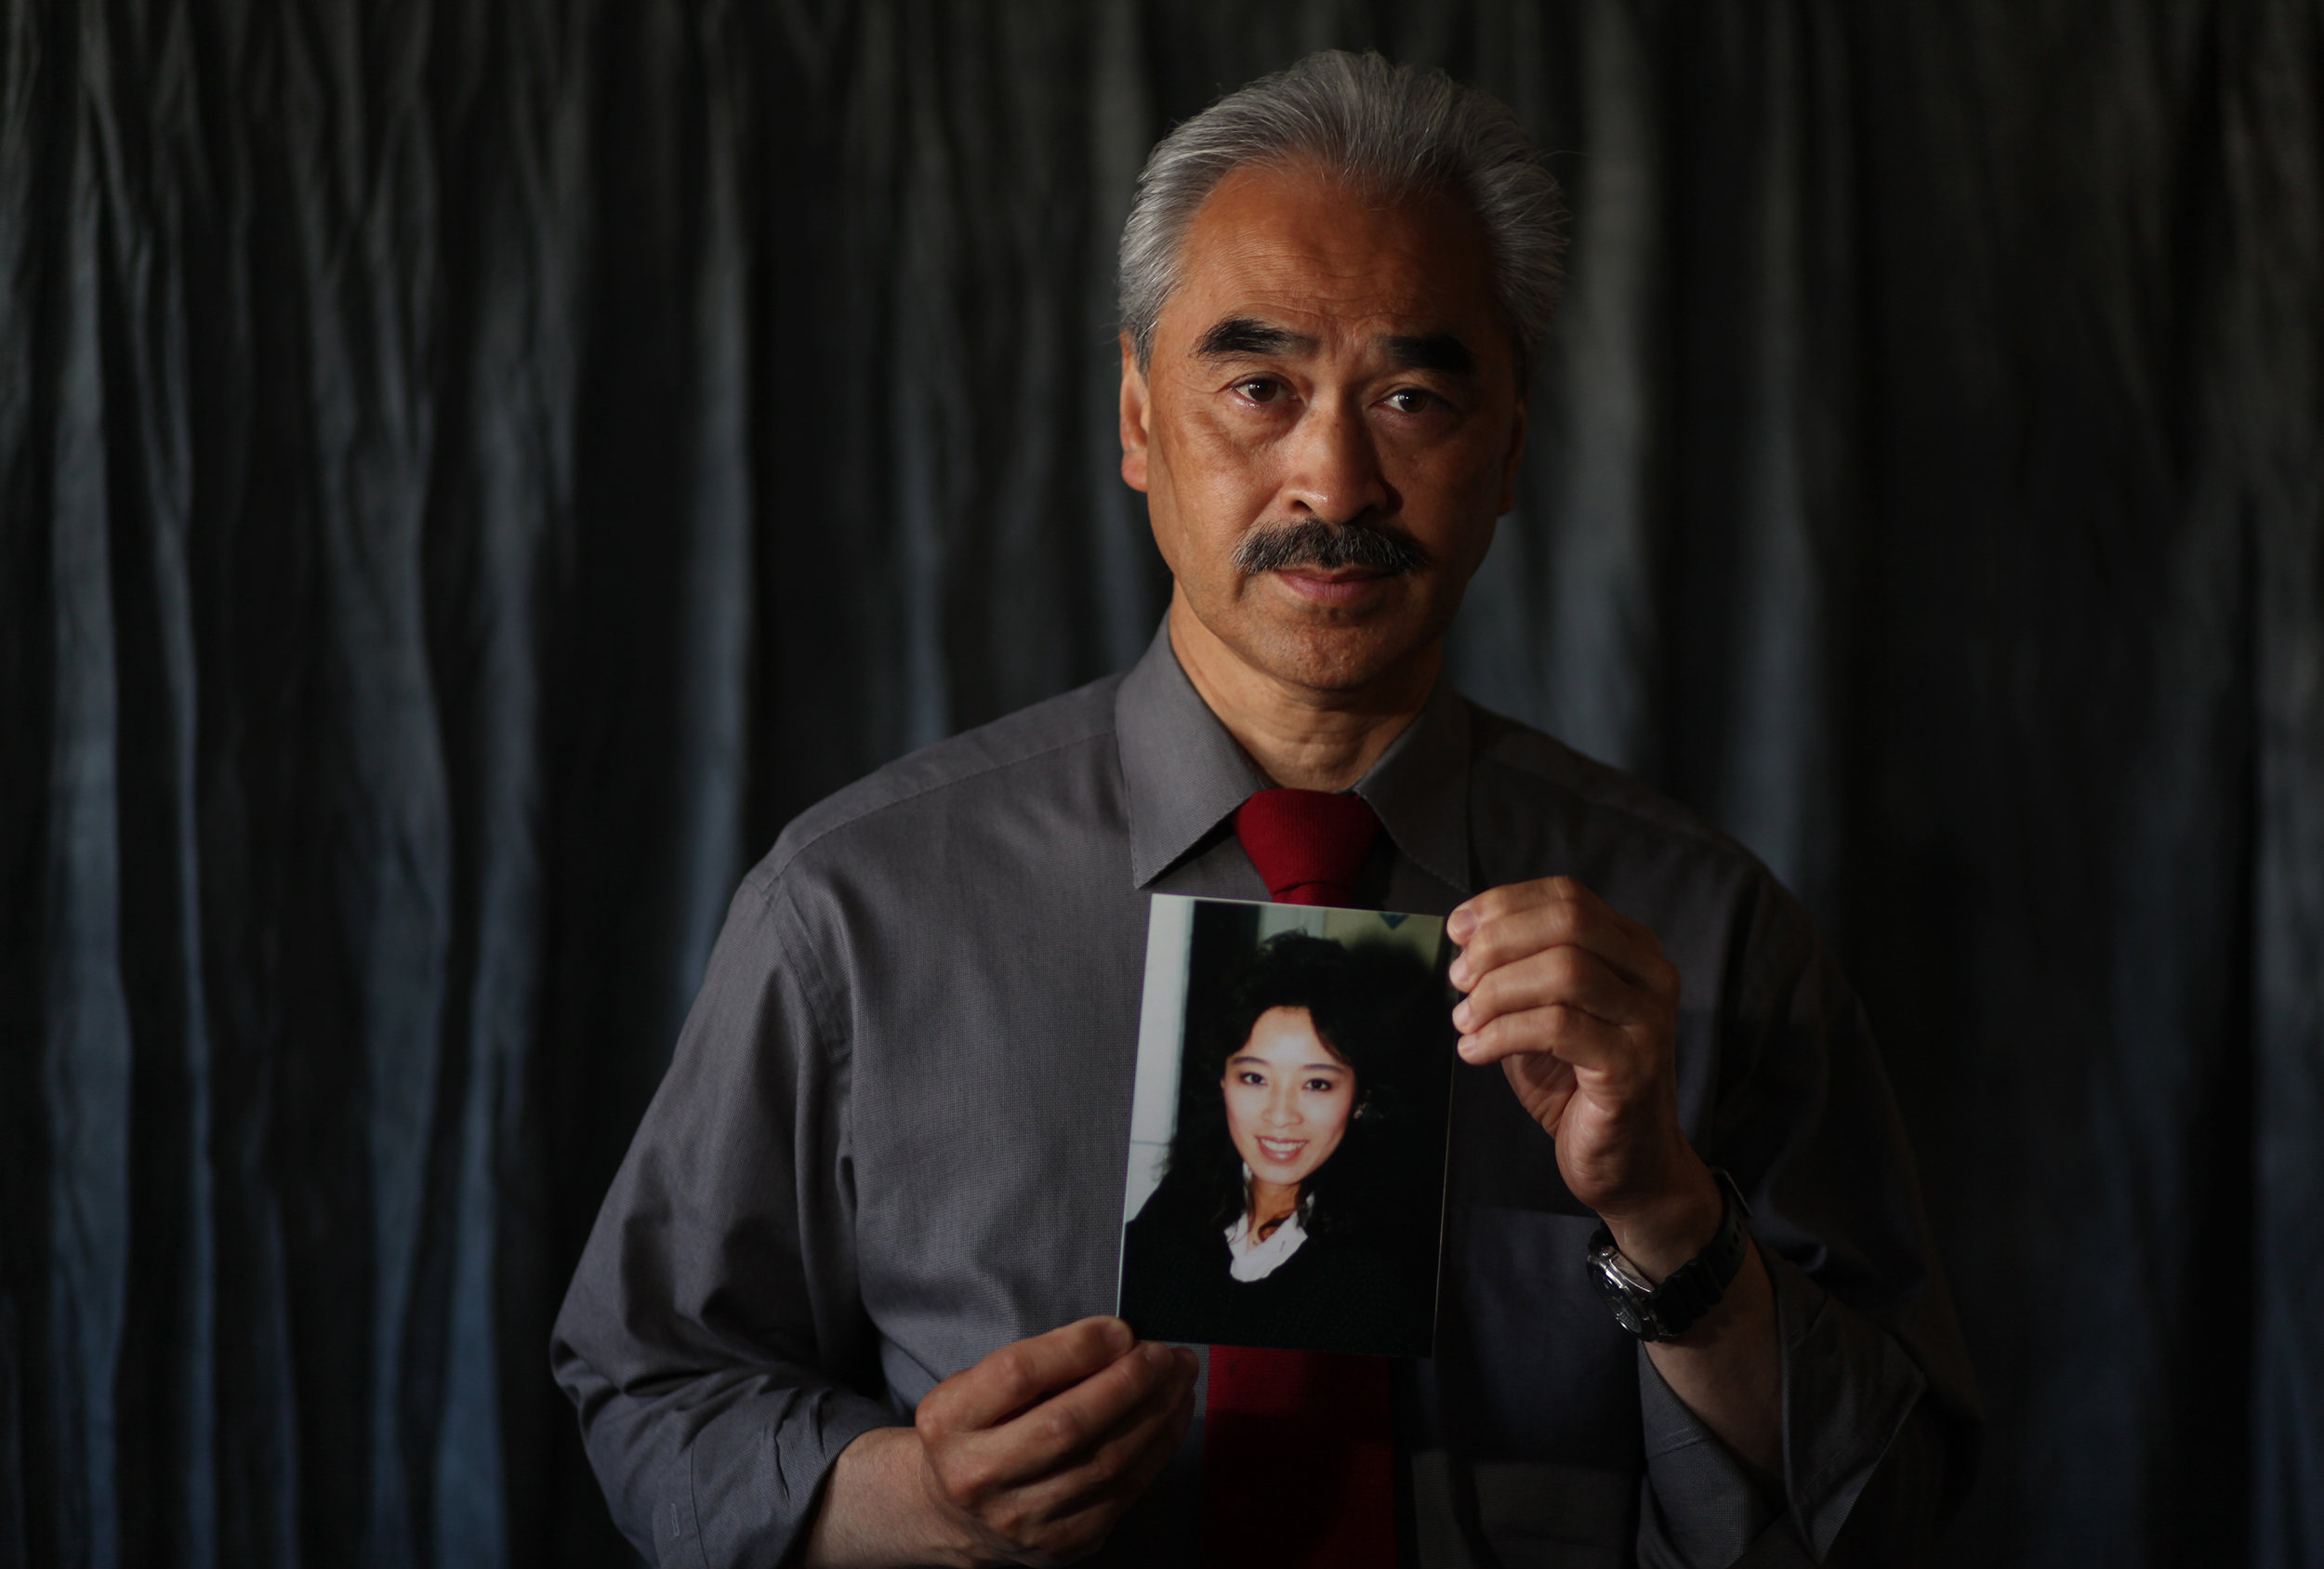 Pain never ebbs for family of Betty Ong, flight attendant who made first 9/11 alert